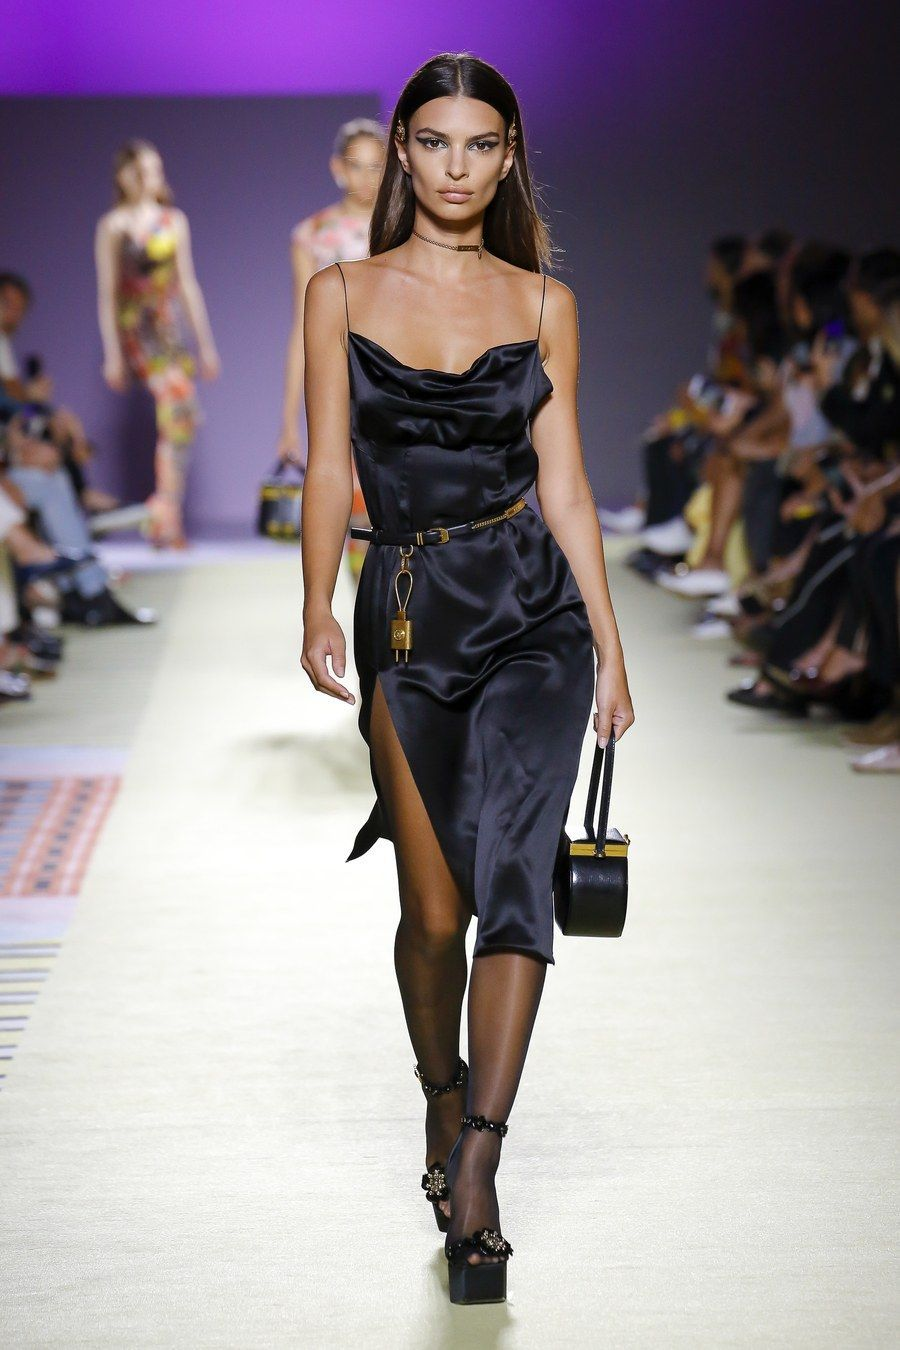 Versace Spring 2019 Ready-to-Wear Fashion Show The complete Versace Spring 2019 Ready-to-Wear fashion show now on Vogue Runway. #runwaydetails